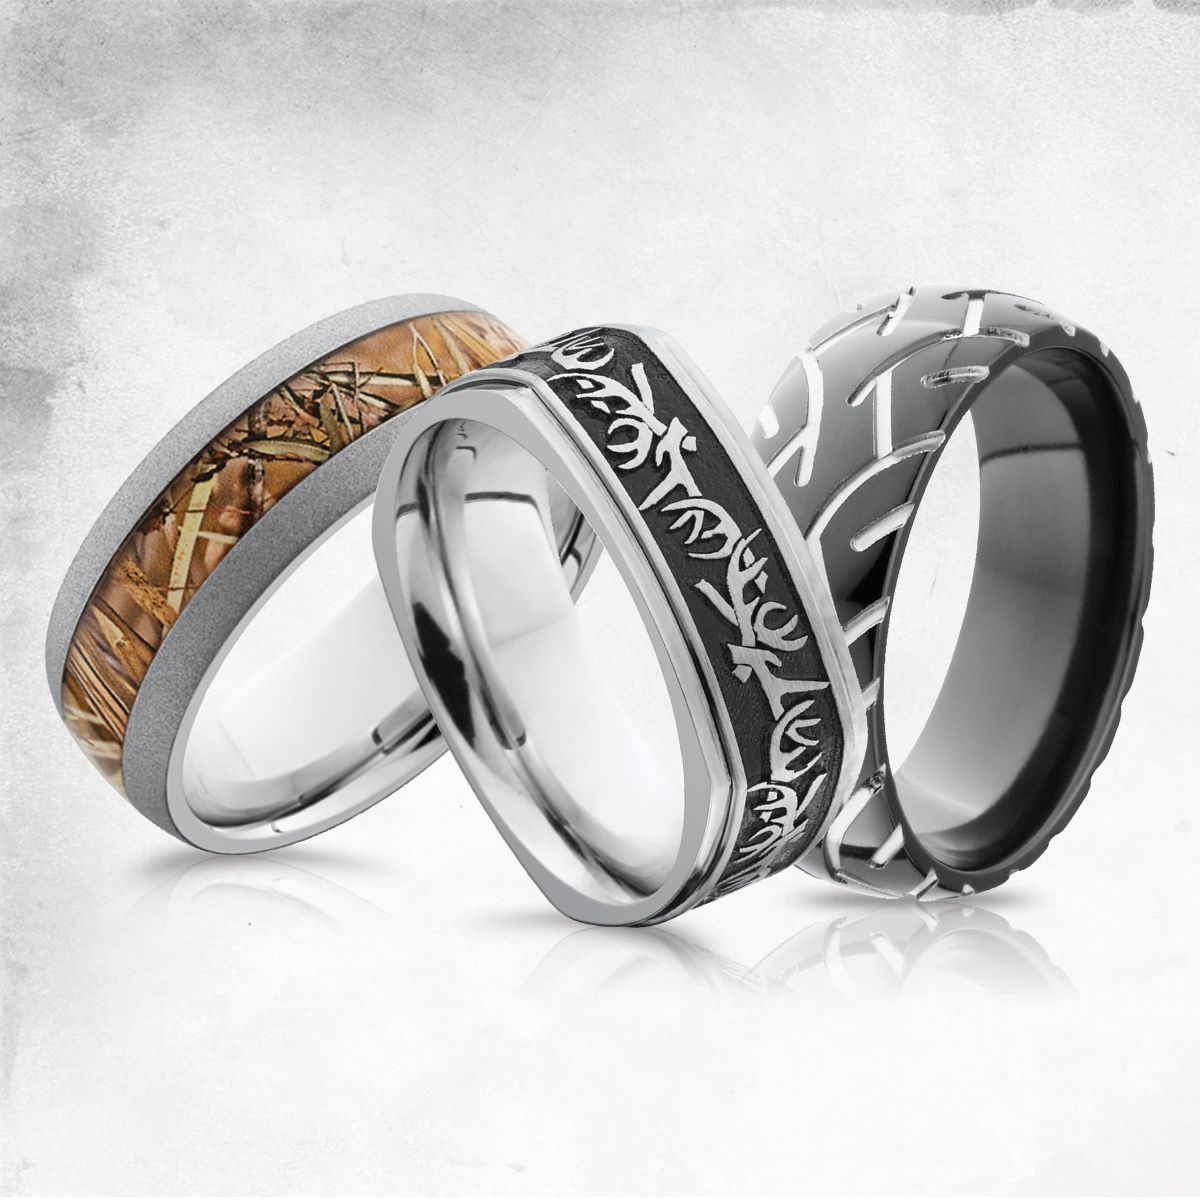 mens camo wedding bands Hunting Camo and Tire Tracks Men s Wedding Bands Men s Wedding Rings